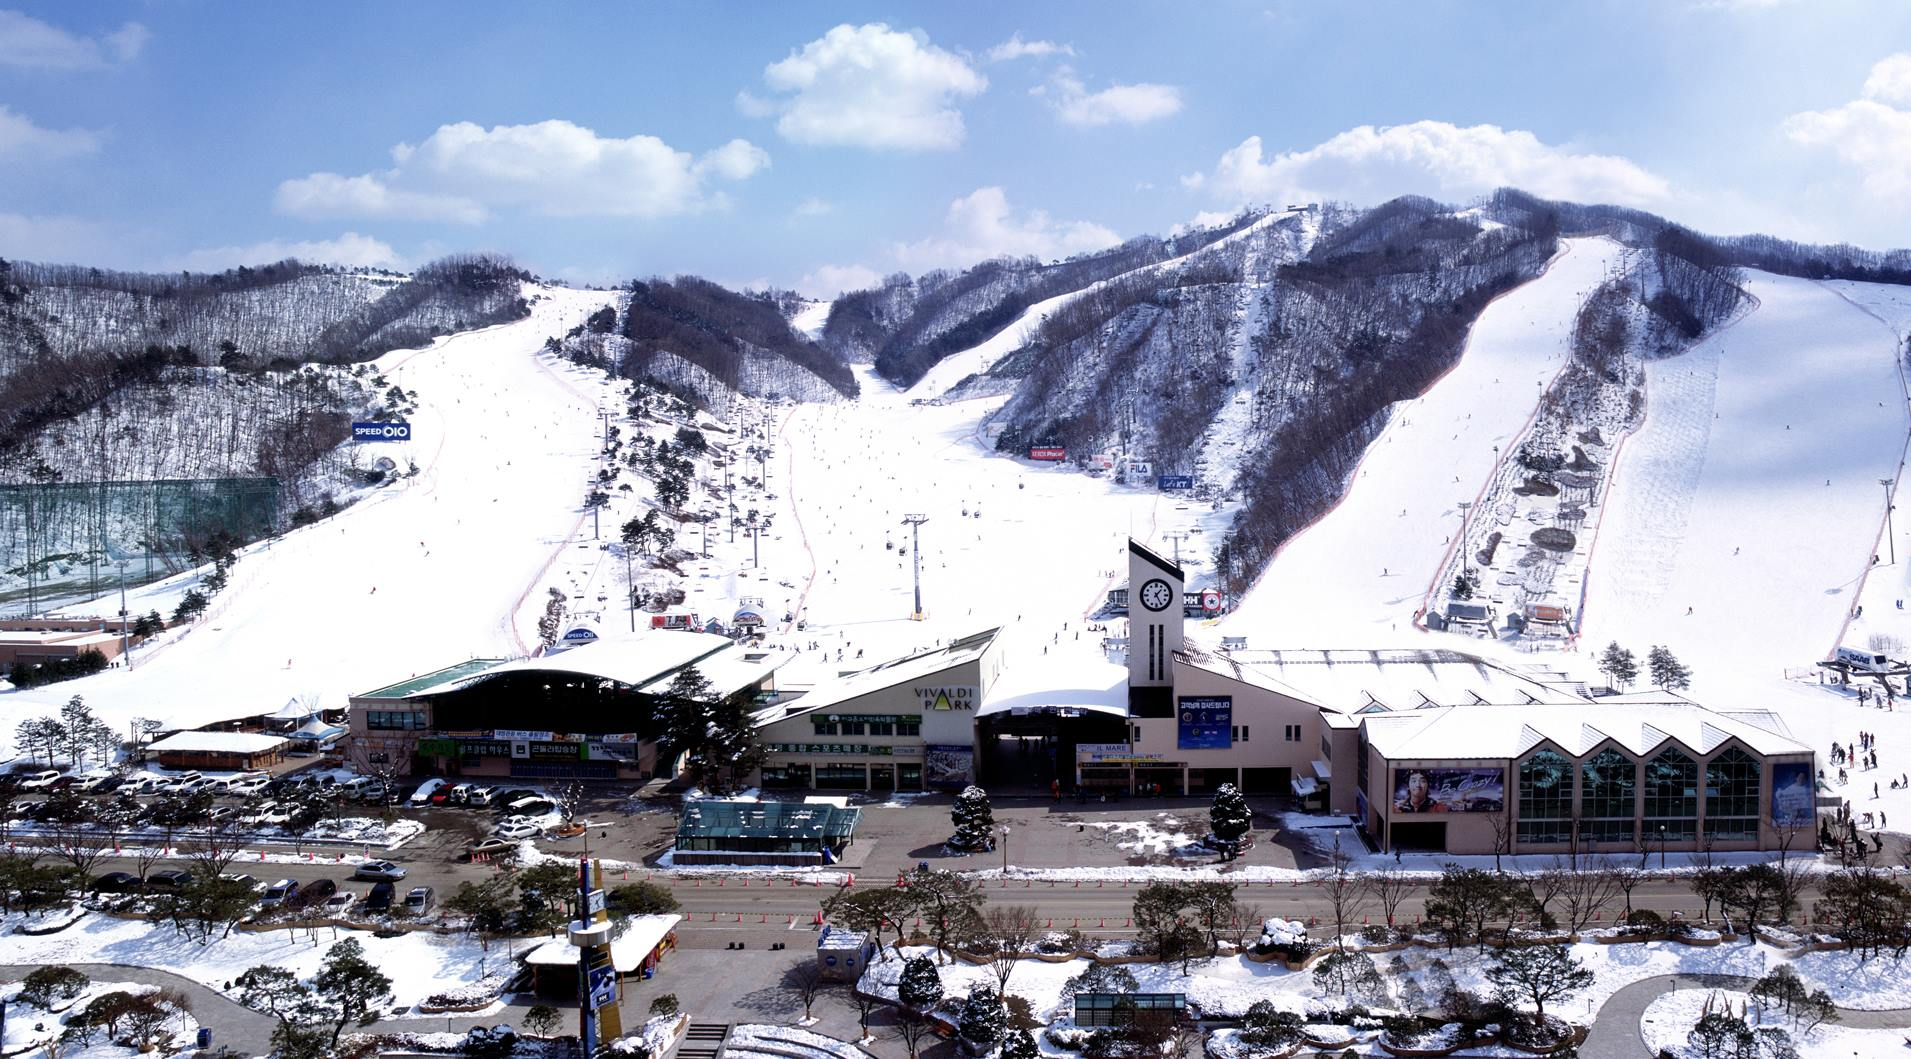 Vivaldi Park Ski Resort | Hongcheon, Gangwon-do